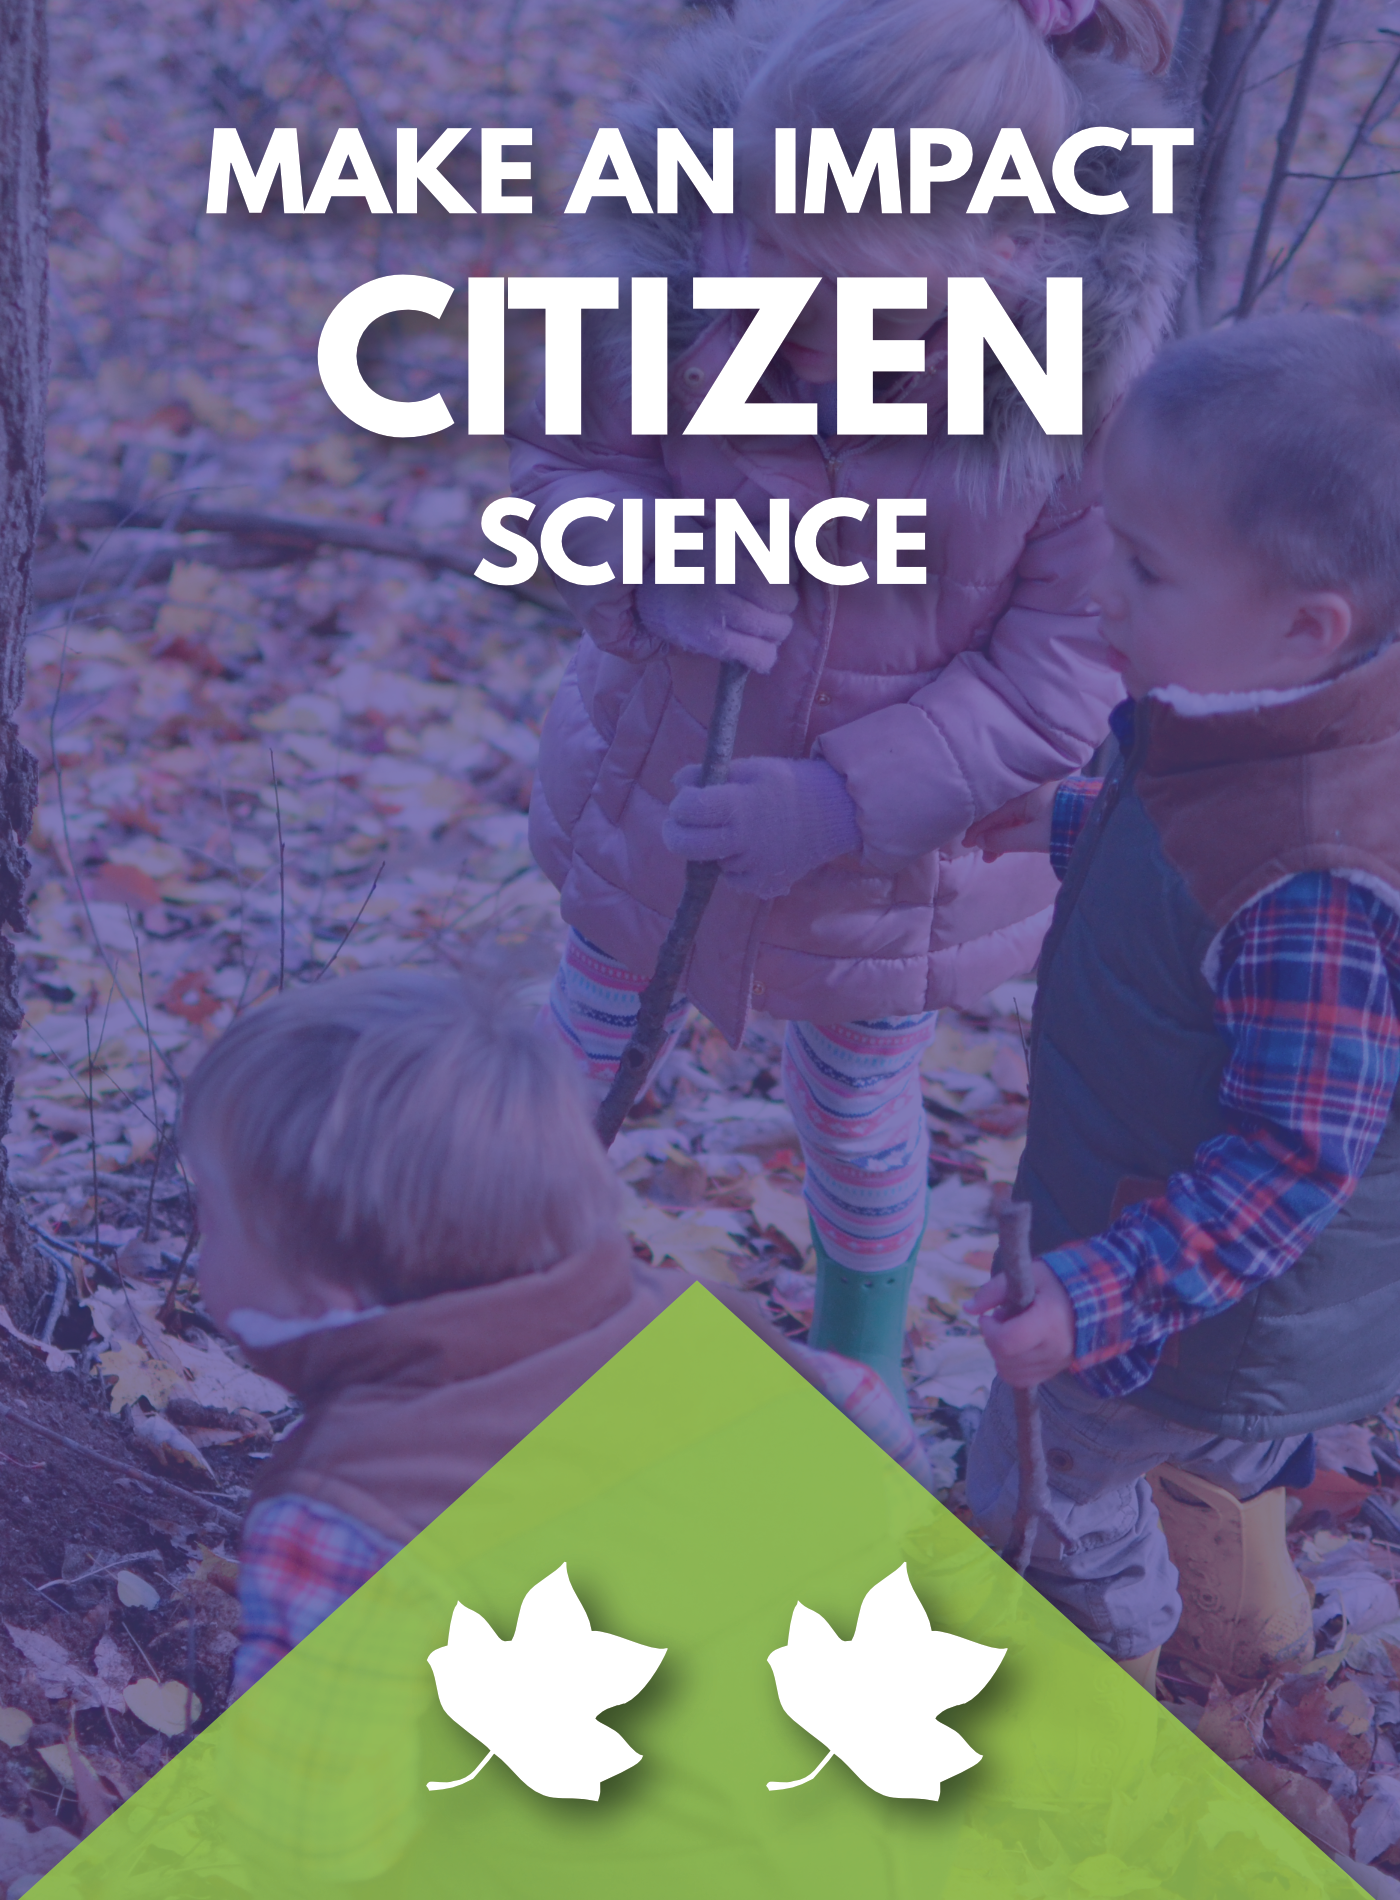 Make an impact with citizen science